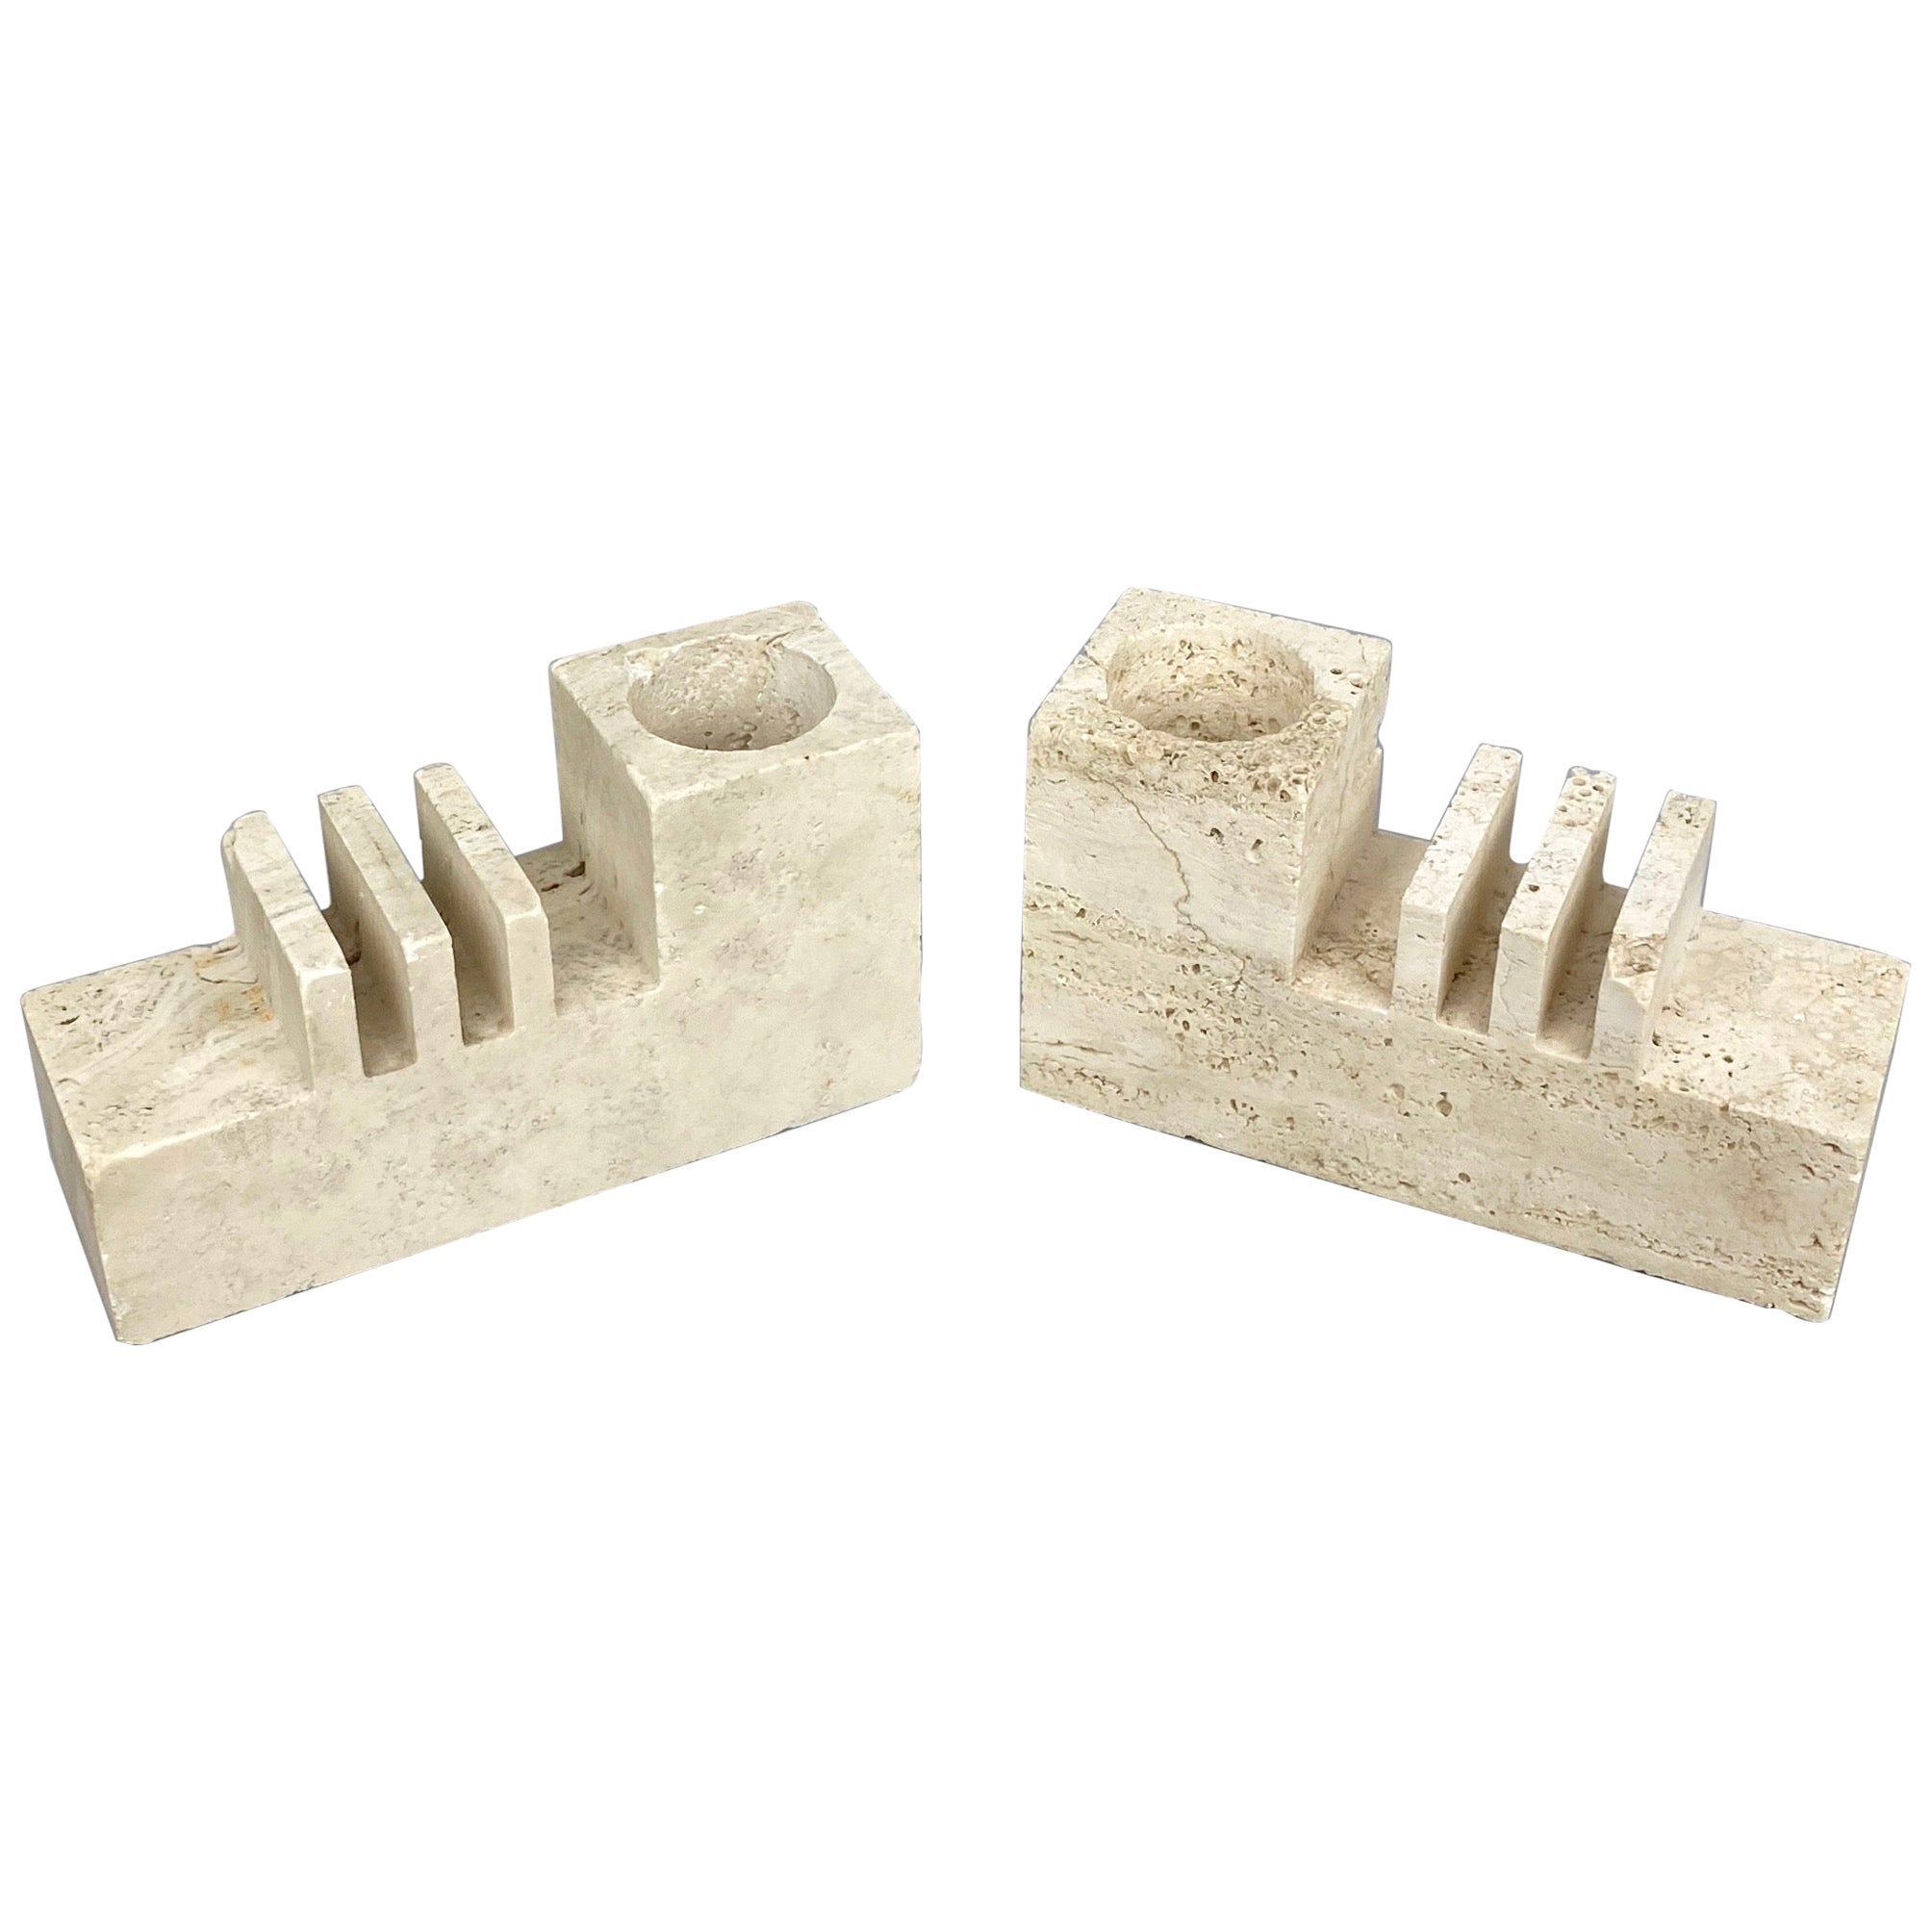 Pair of Travertine Letter and Pen Holder by Fratelli Mannelli, Italy, 1970s